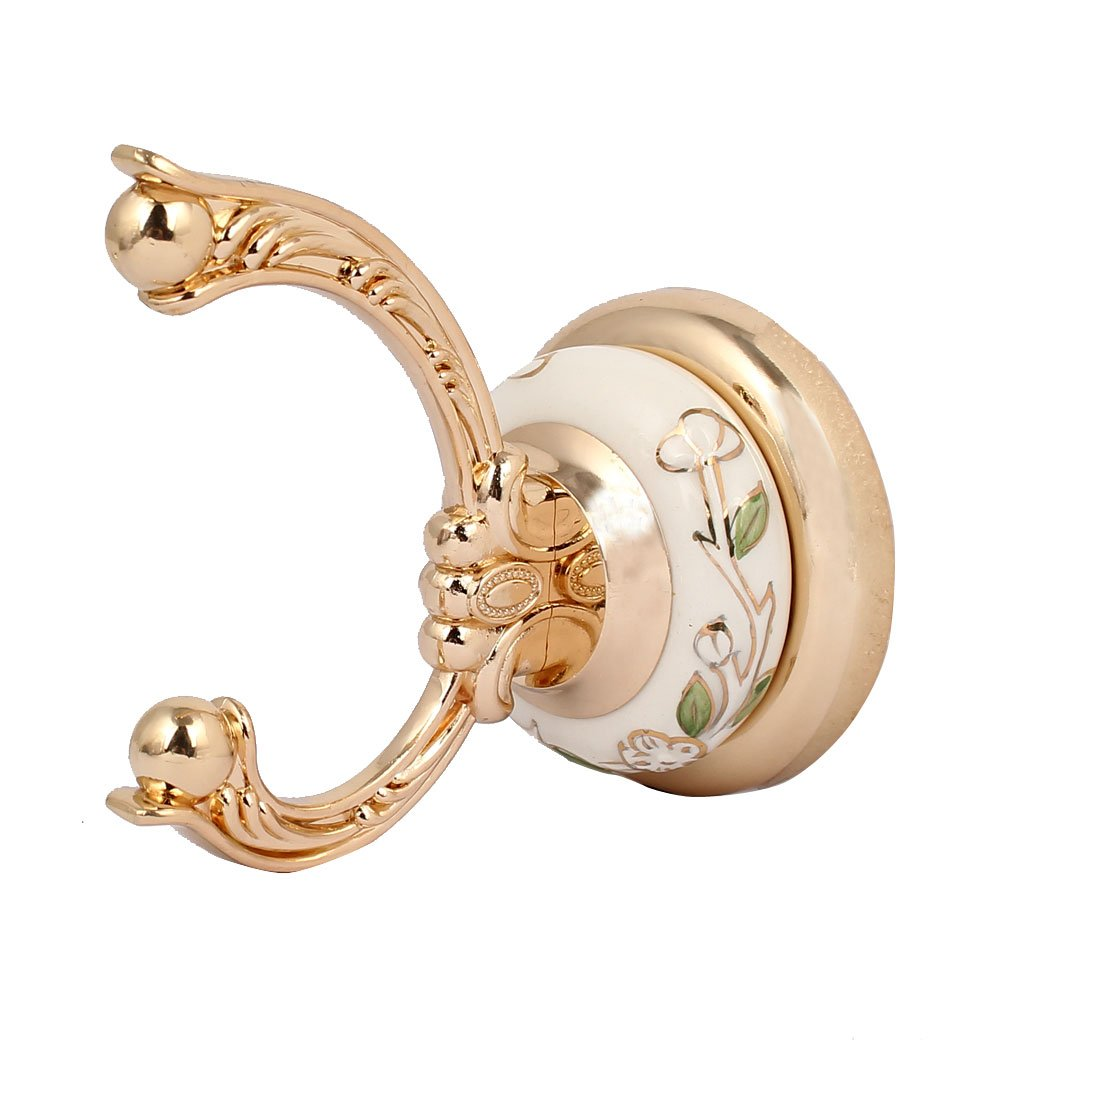 uxcell Metal Flower Pattern Double Hooks Screw Mounted Round Base Wall Hanger Gold Tone